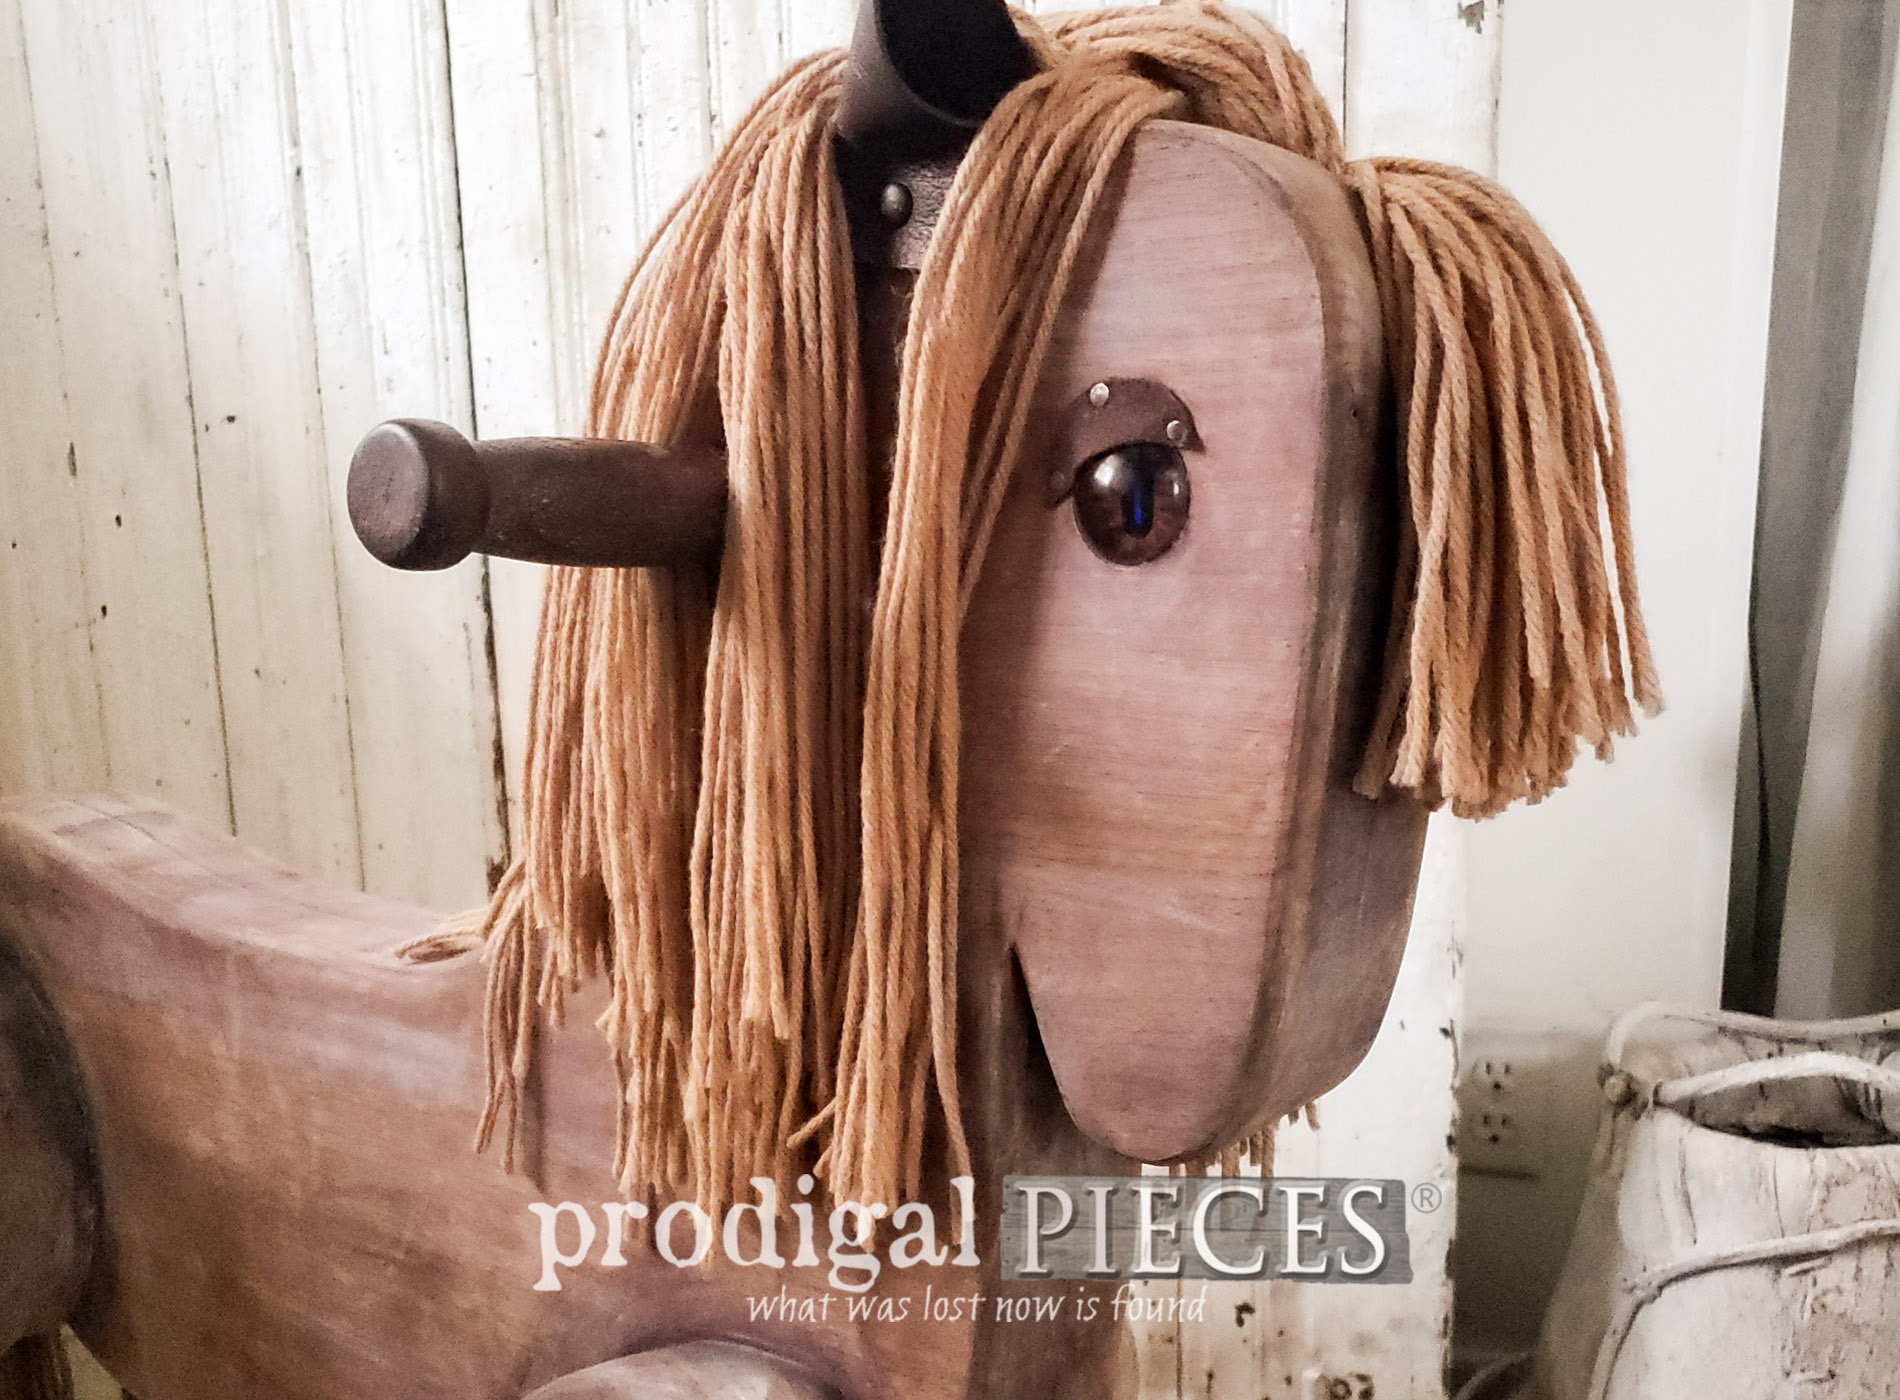 Featured Vintage Rocking Horse Restored & Refinished by Larissa of Prodigal Pieces | Details at prodigalpieces.com #prodigalpieces #diy #farmhouse #kids #toys #handmade #home #homedecor #baby #nursery